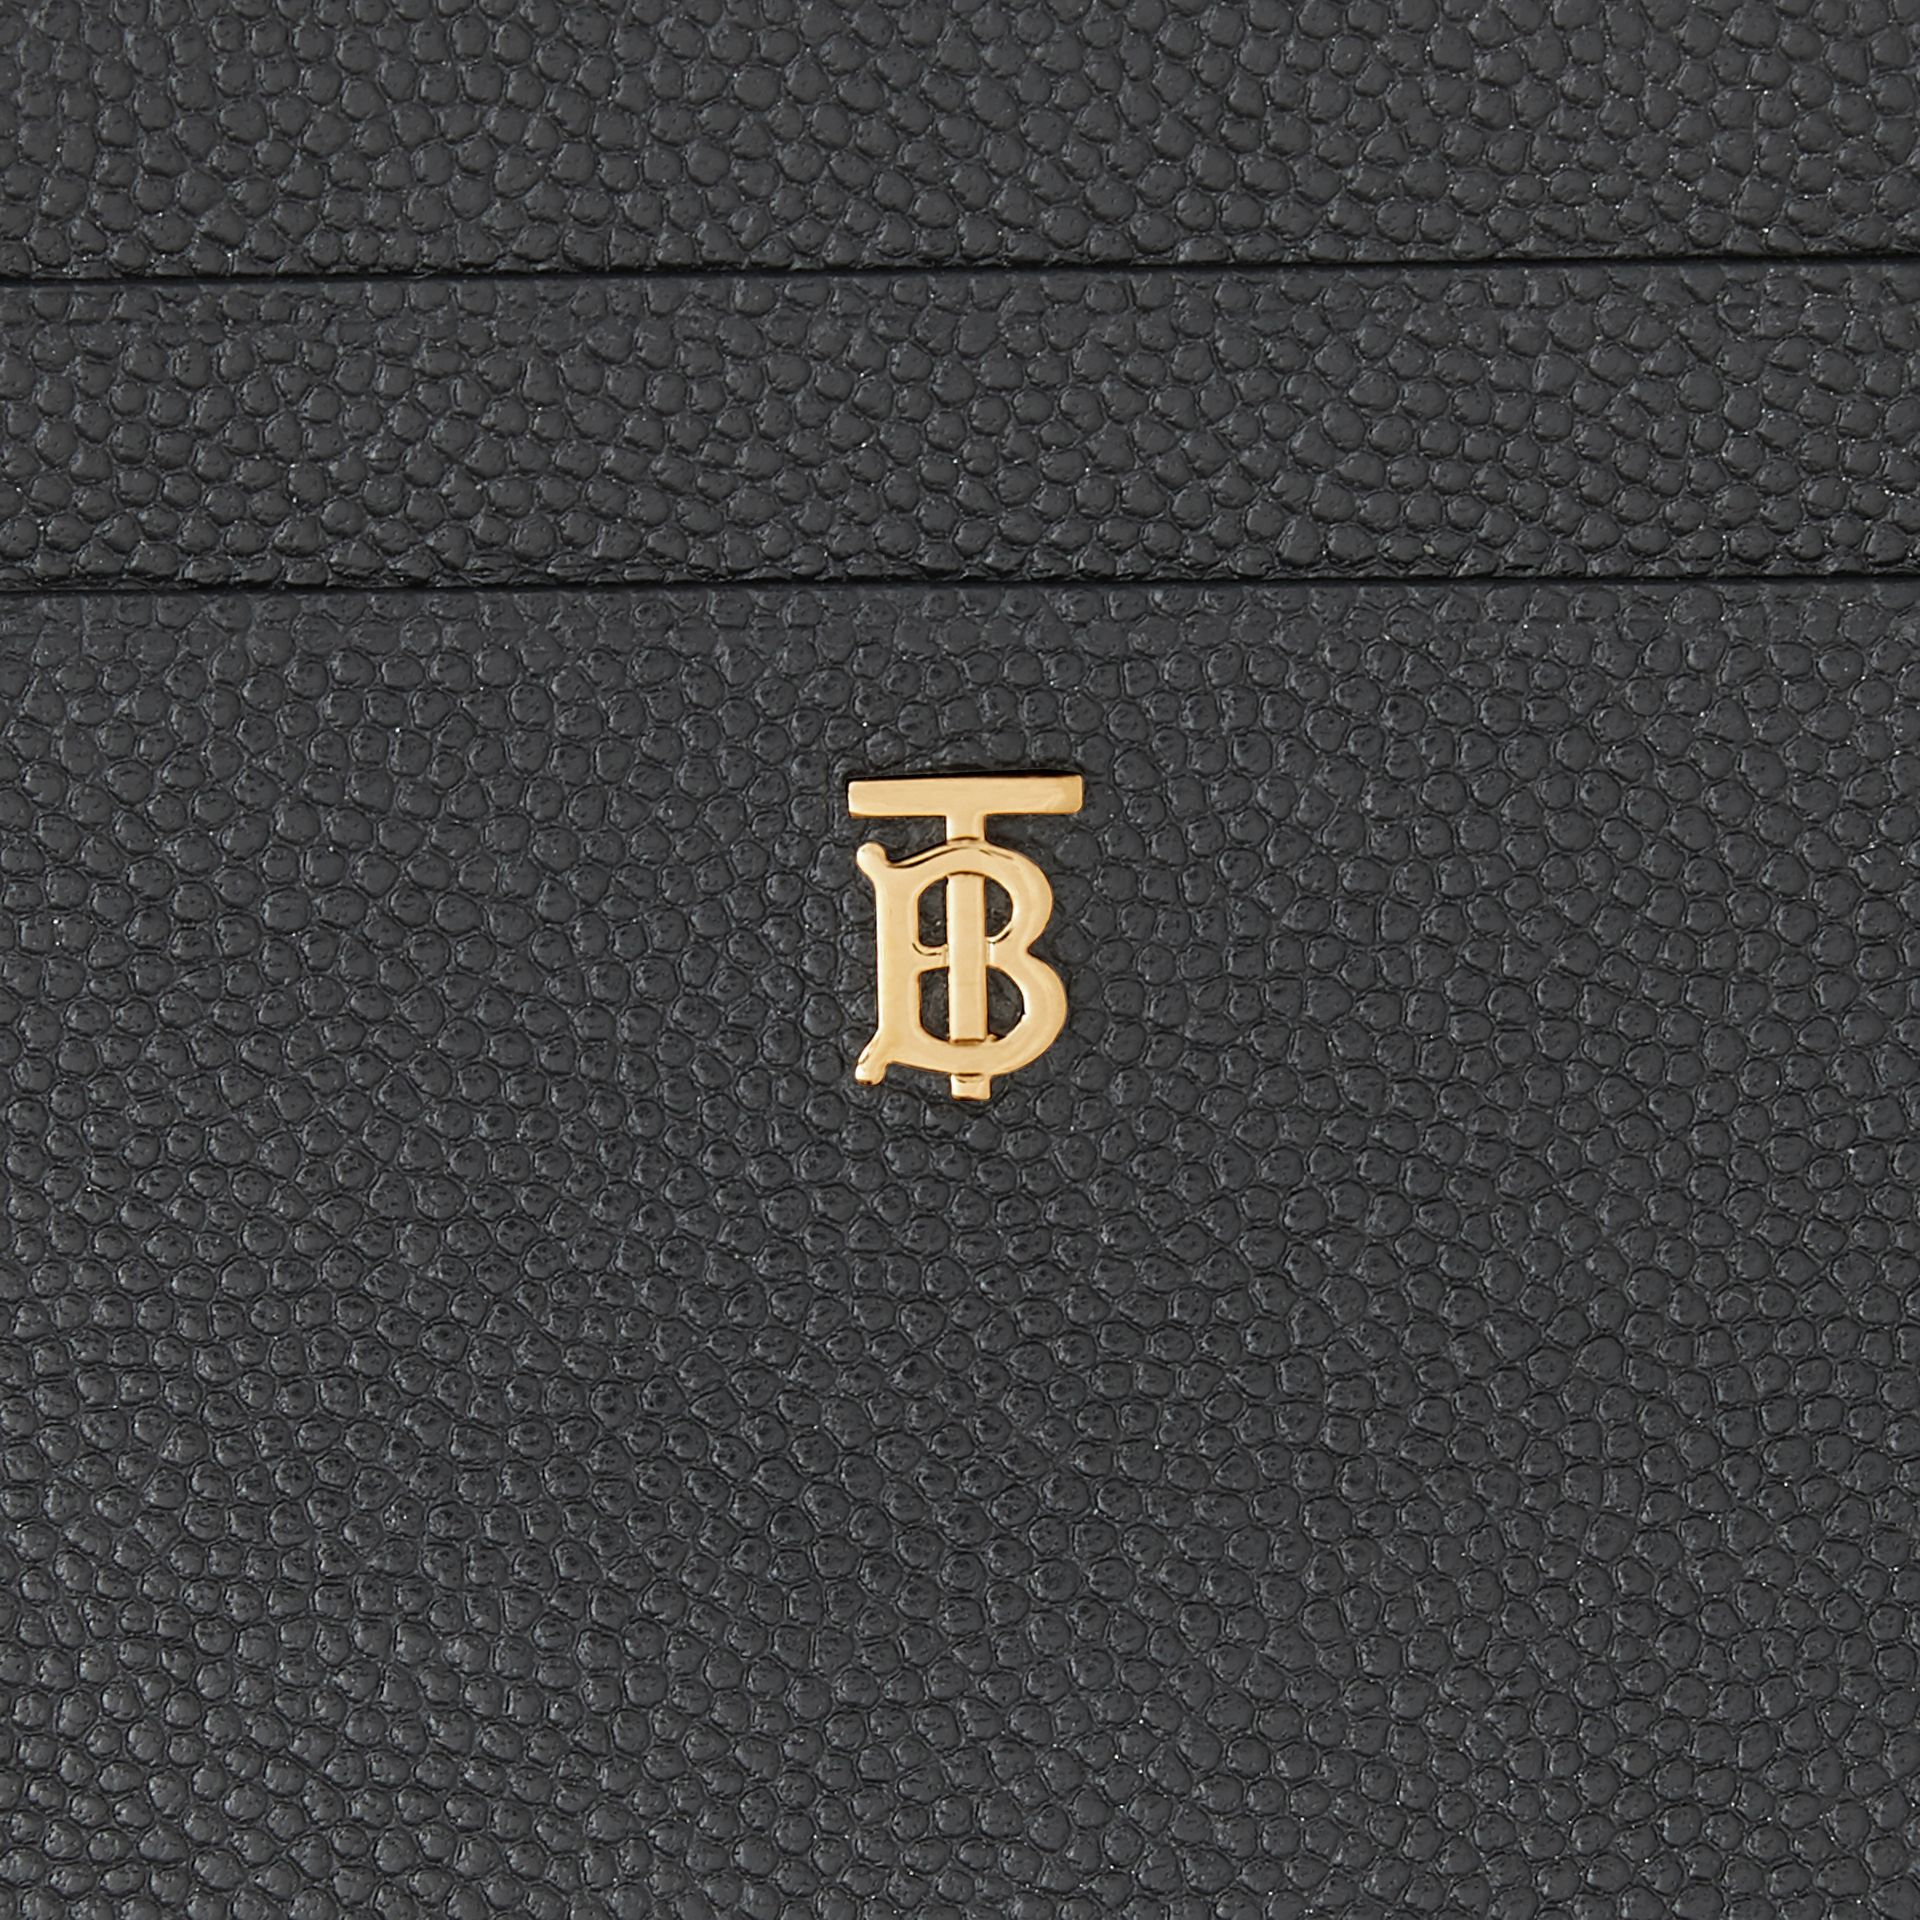 Monogram Motif Grainy Leather Zip Card Case in Black - Women | Burberry Hong Kong S.A.R - gallery image 1